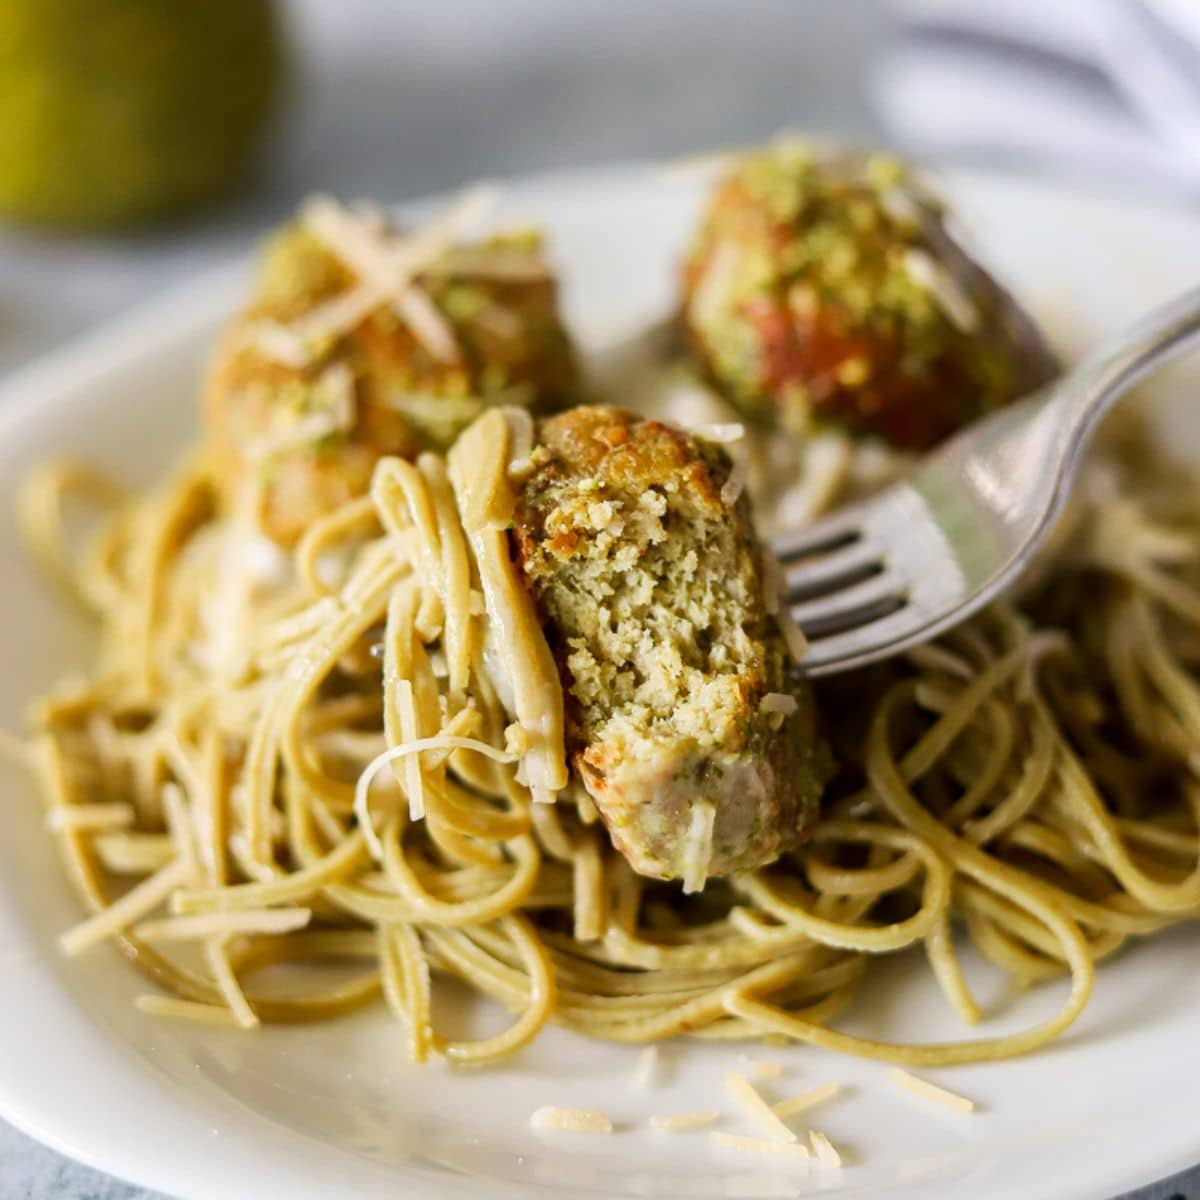 a plate of pasta and meatballs. one meatball is being speared with a fork and a bite has been taken.